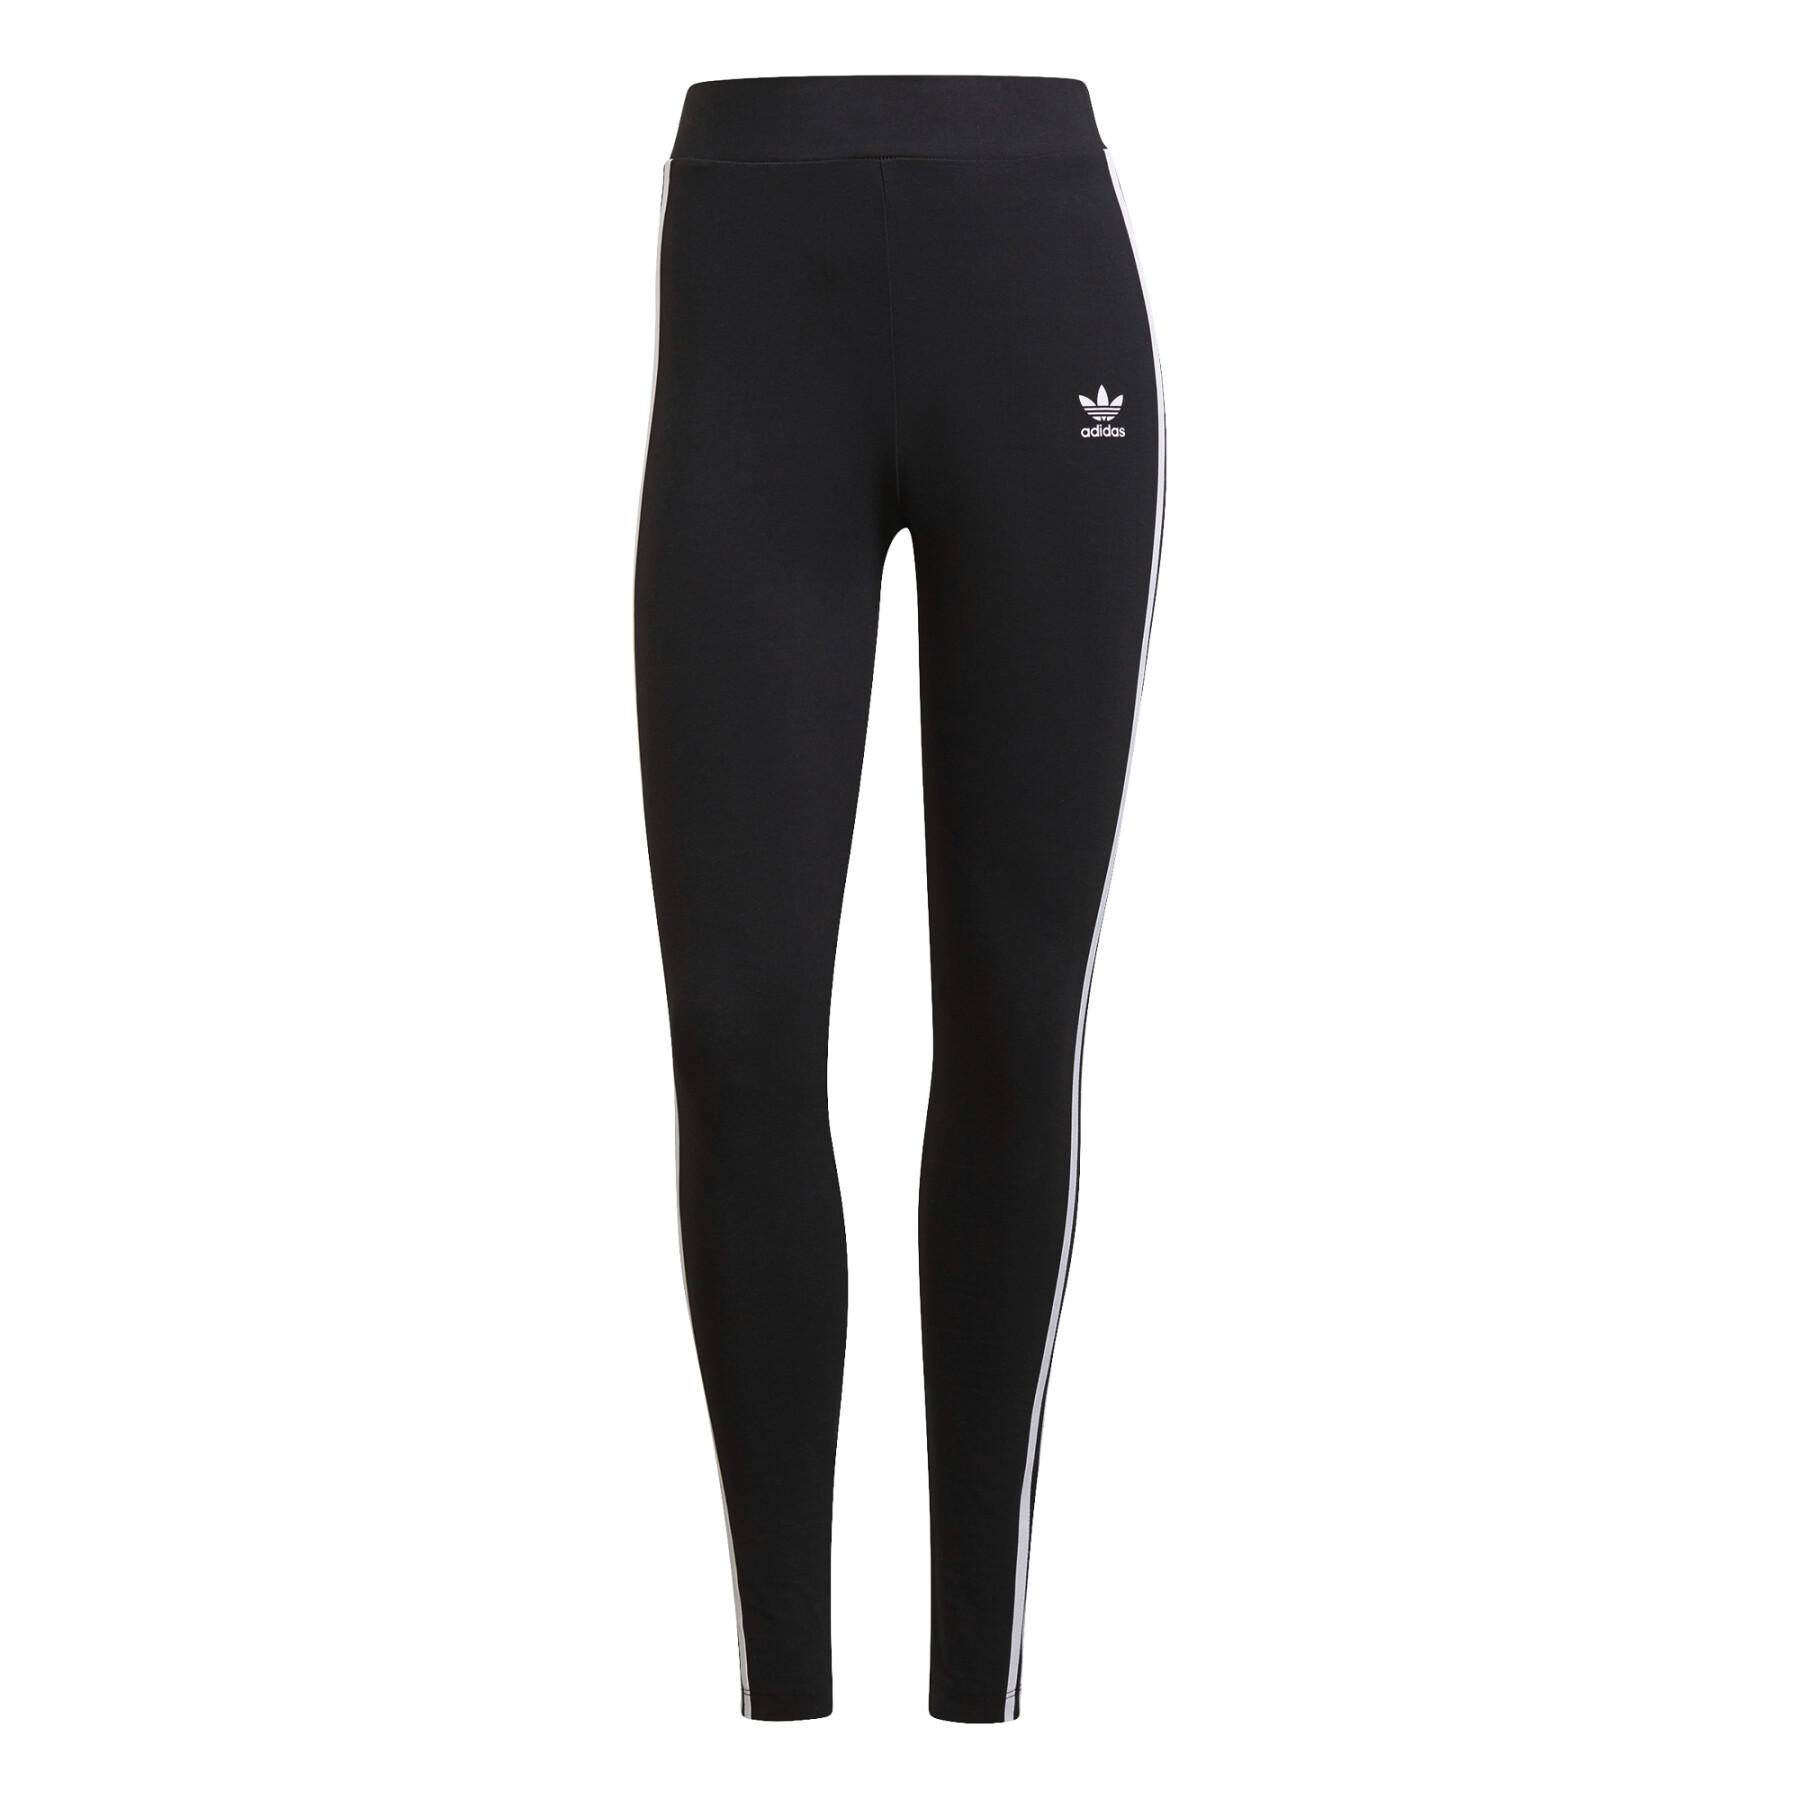 Women's trousers adidas 3 bandes